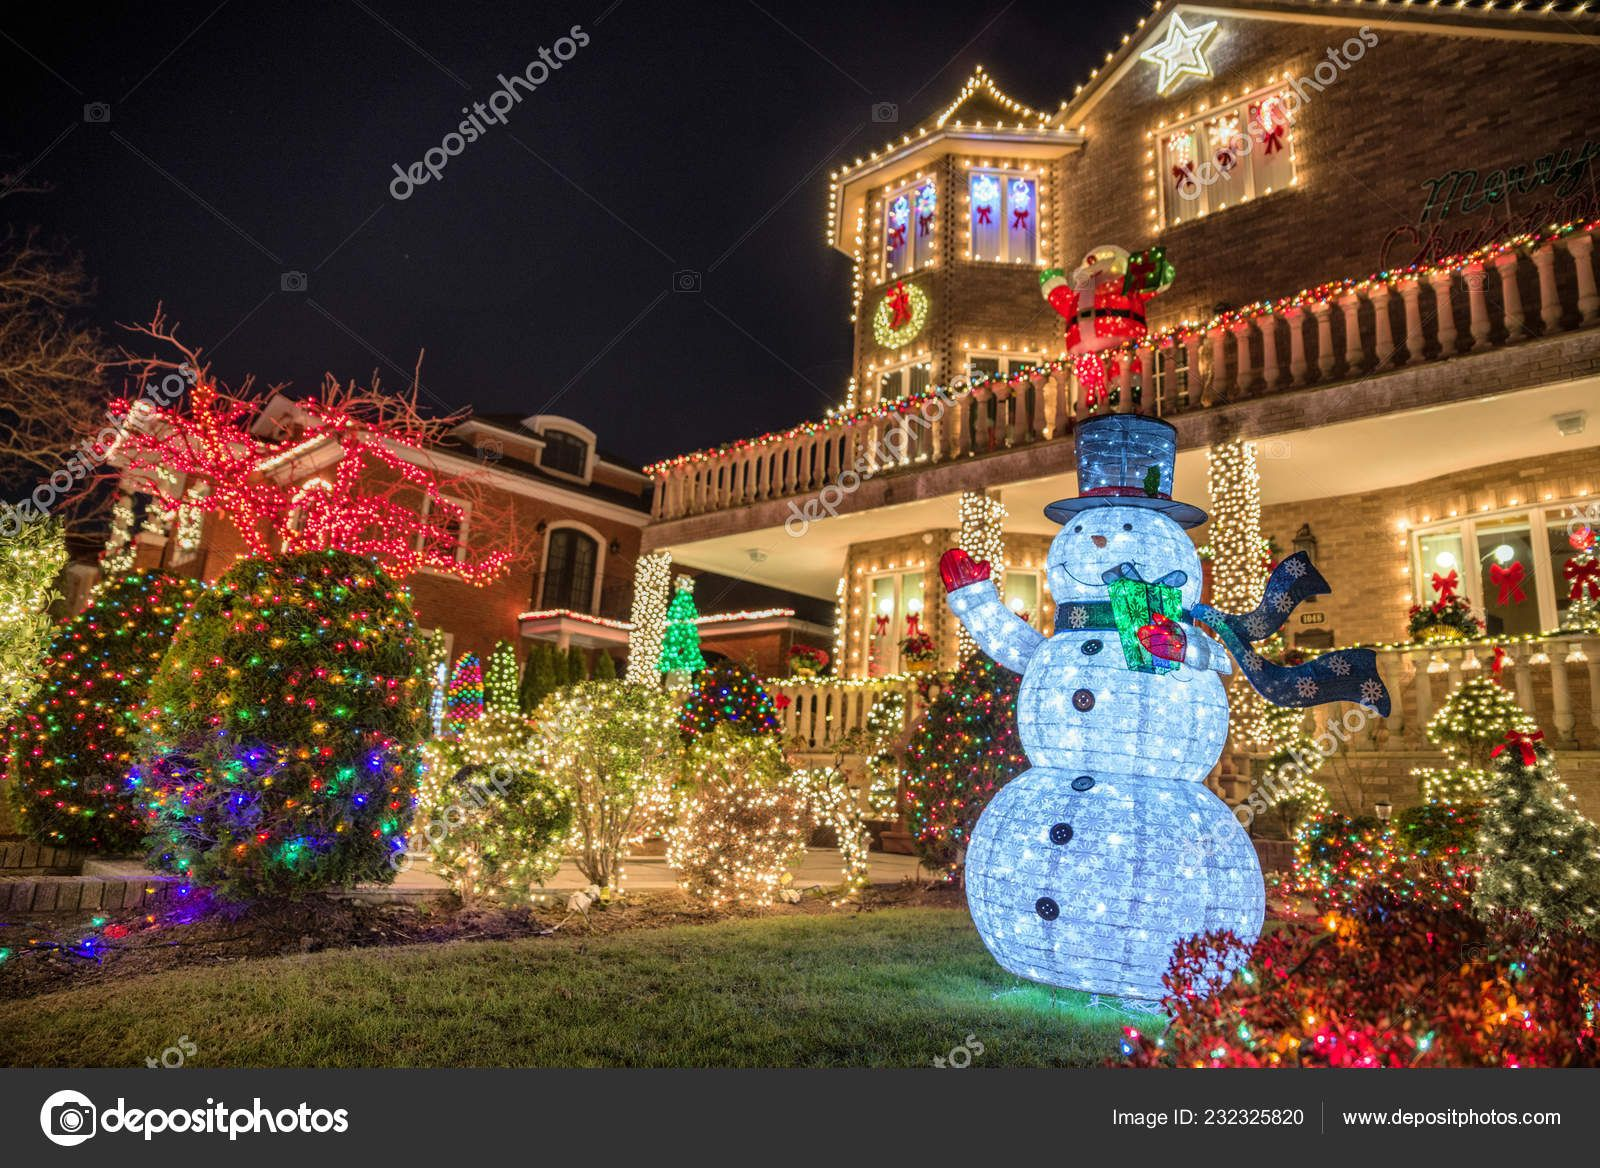 New York Usa December 10 2018 Christmas Decorations Of Houses In The Neighborhood Of Dyker H Christmas Decorations For The Home Christmas Decorations Decor